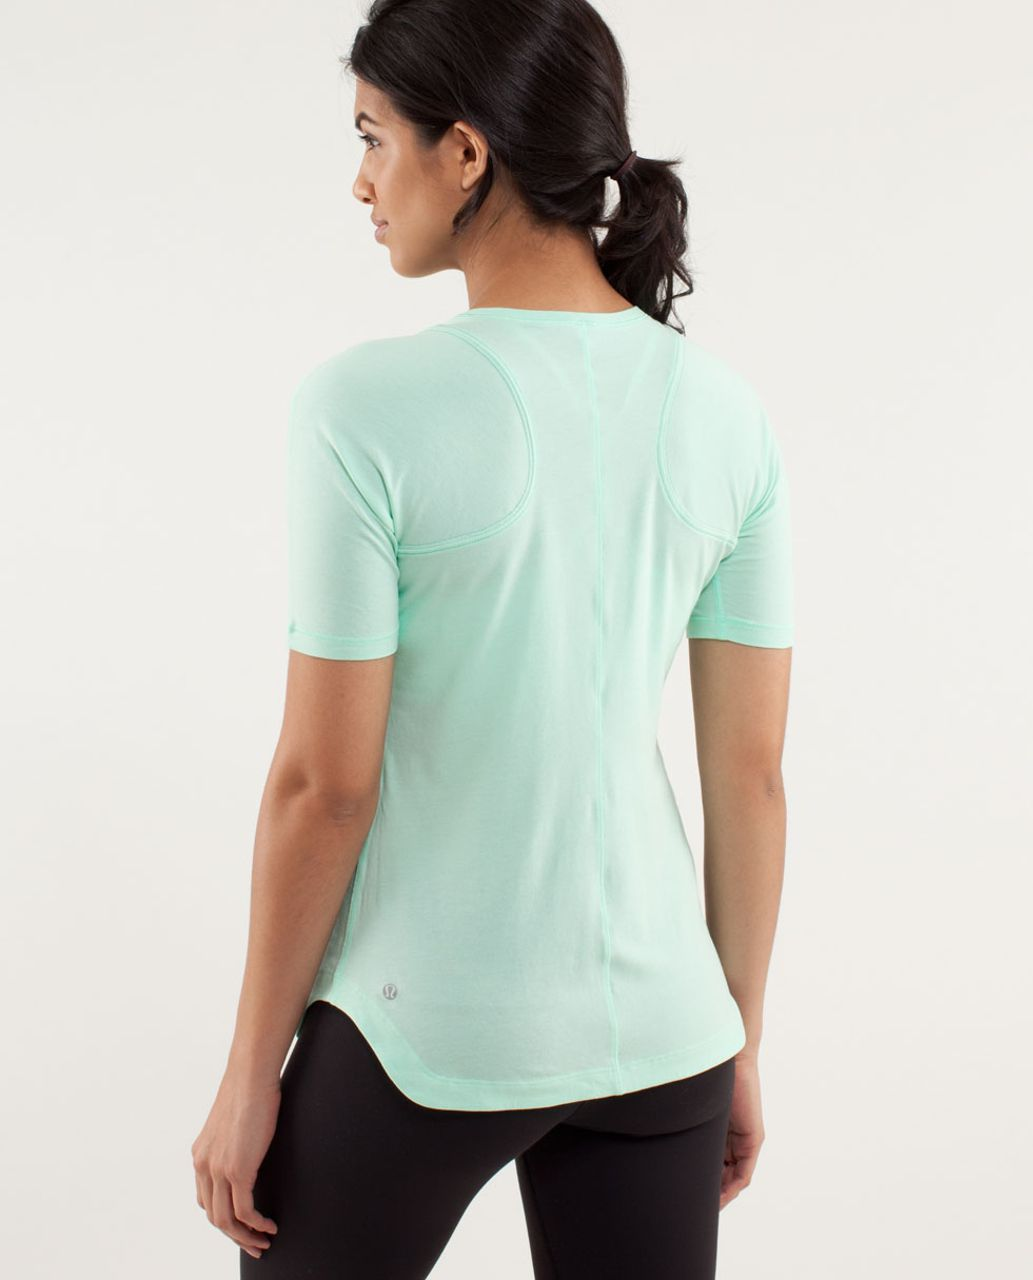 Lululemon Clari-Tee Short Sleeve - Fresh Teal